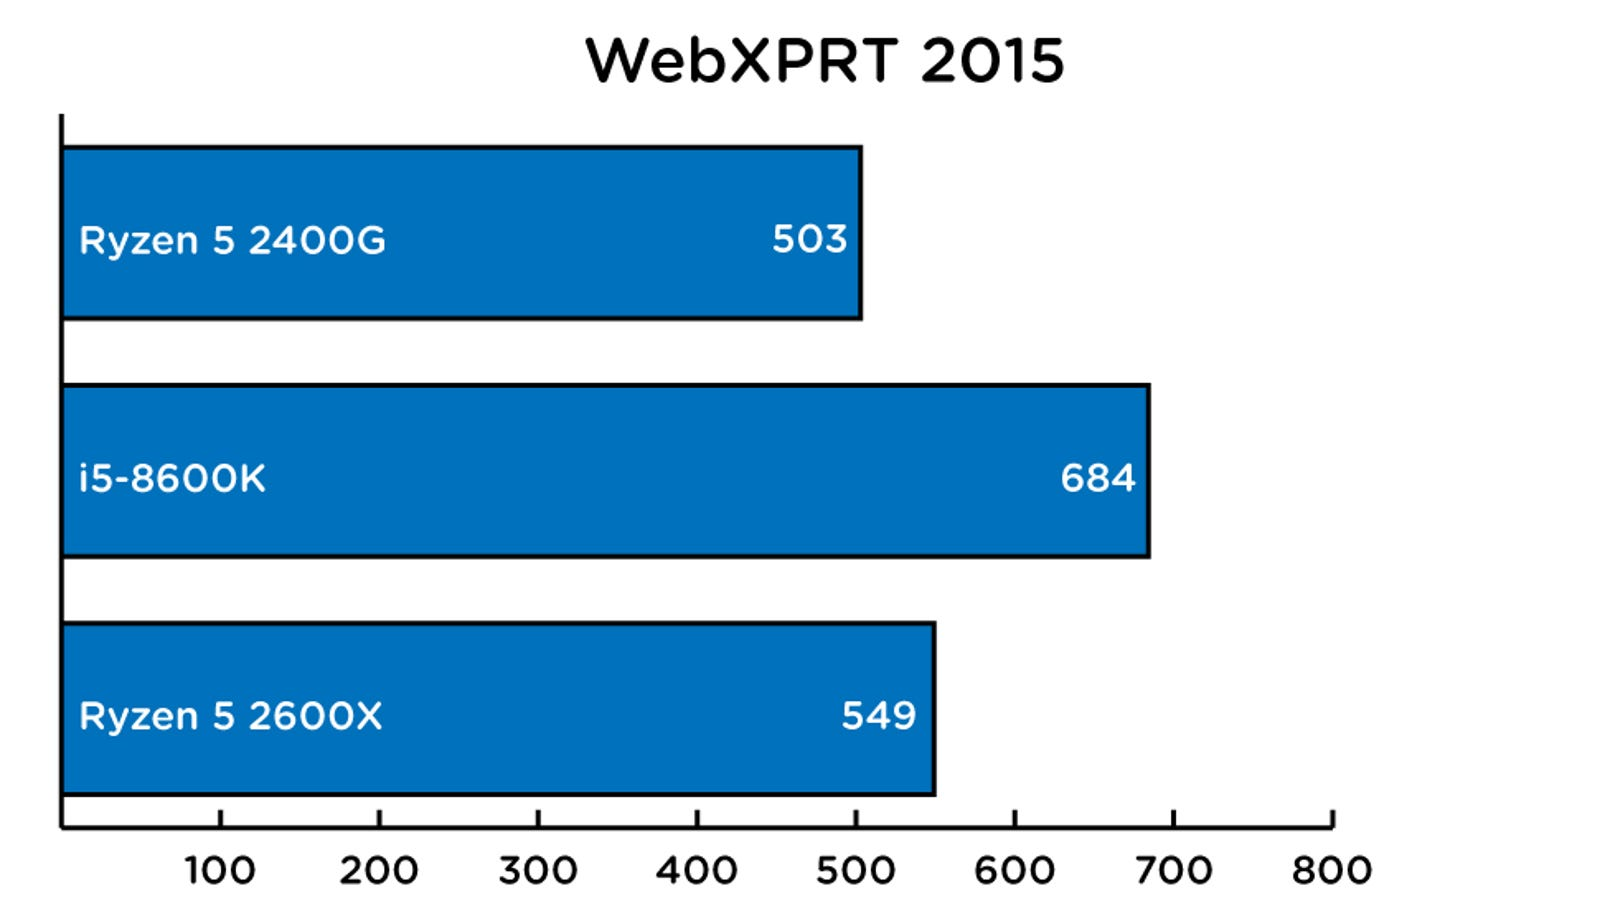 WebXPRT 2015 score. Higher is better.